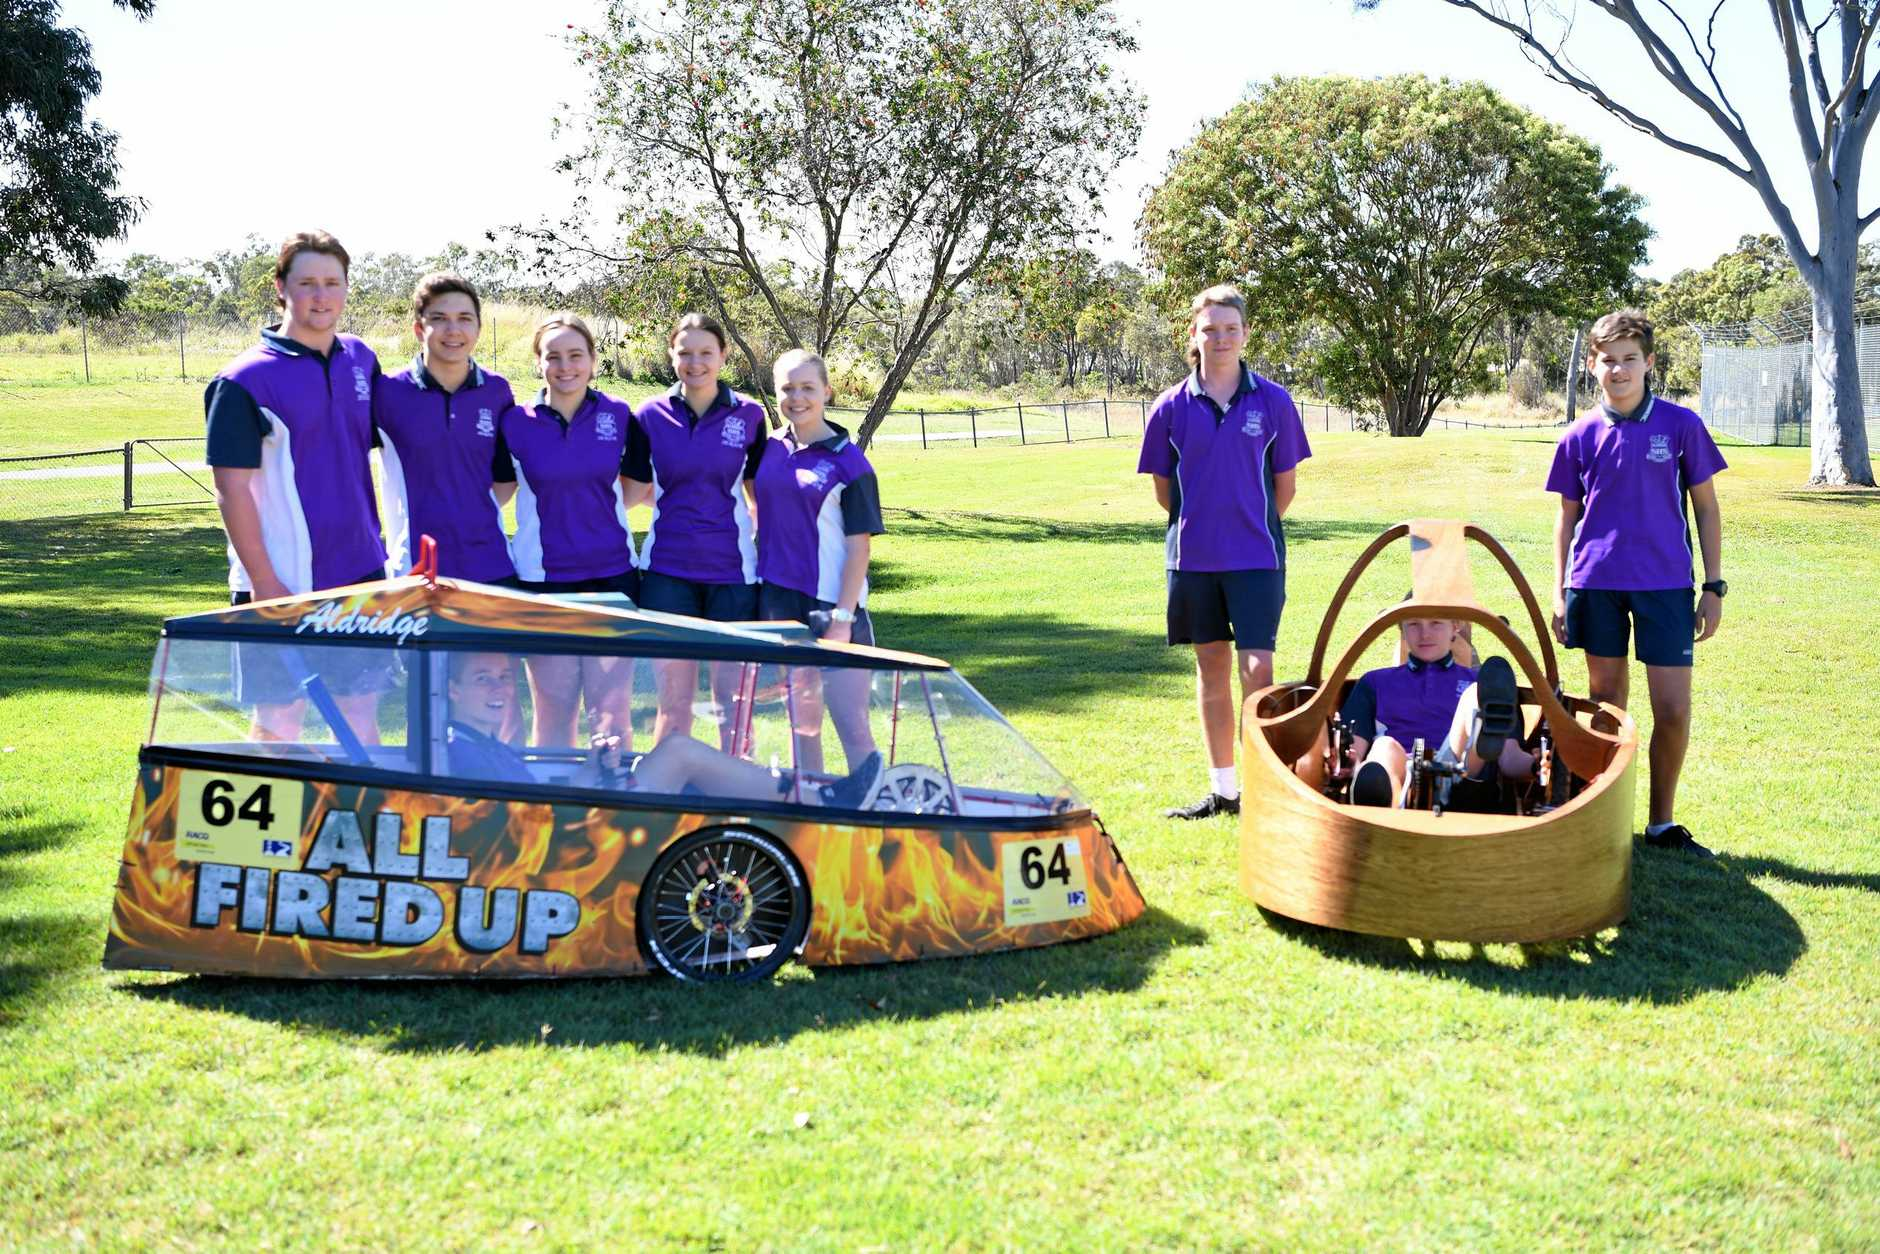 READY TO RACE: Aldridge HPV students with All fired up, Alannah Sauer (in car), Billy Terry, Jacob Brooks, Jade Hartigan, Brylee Howlett, Keeley Thompson,  Blake Hewson, Jesse Hewson (in car) and Jethro Taylor.